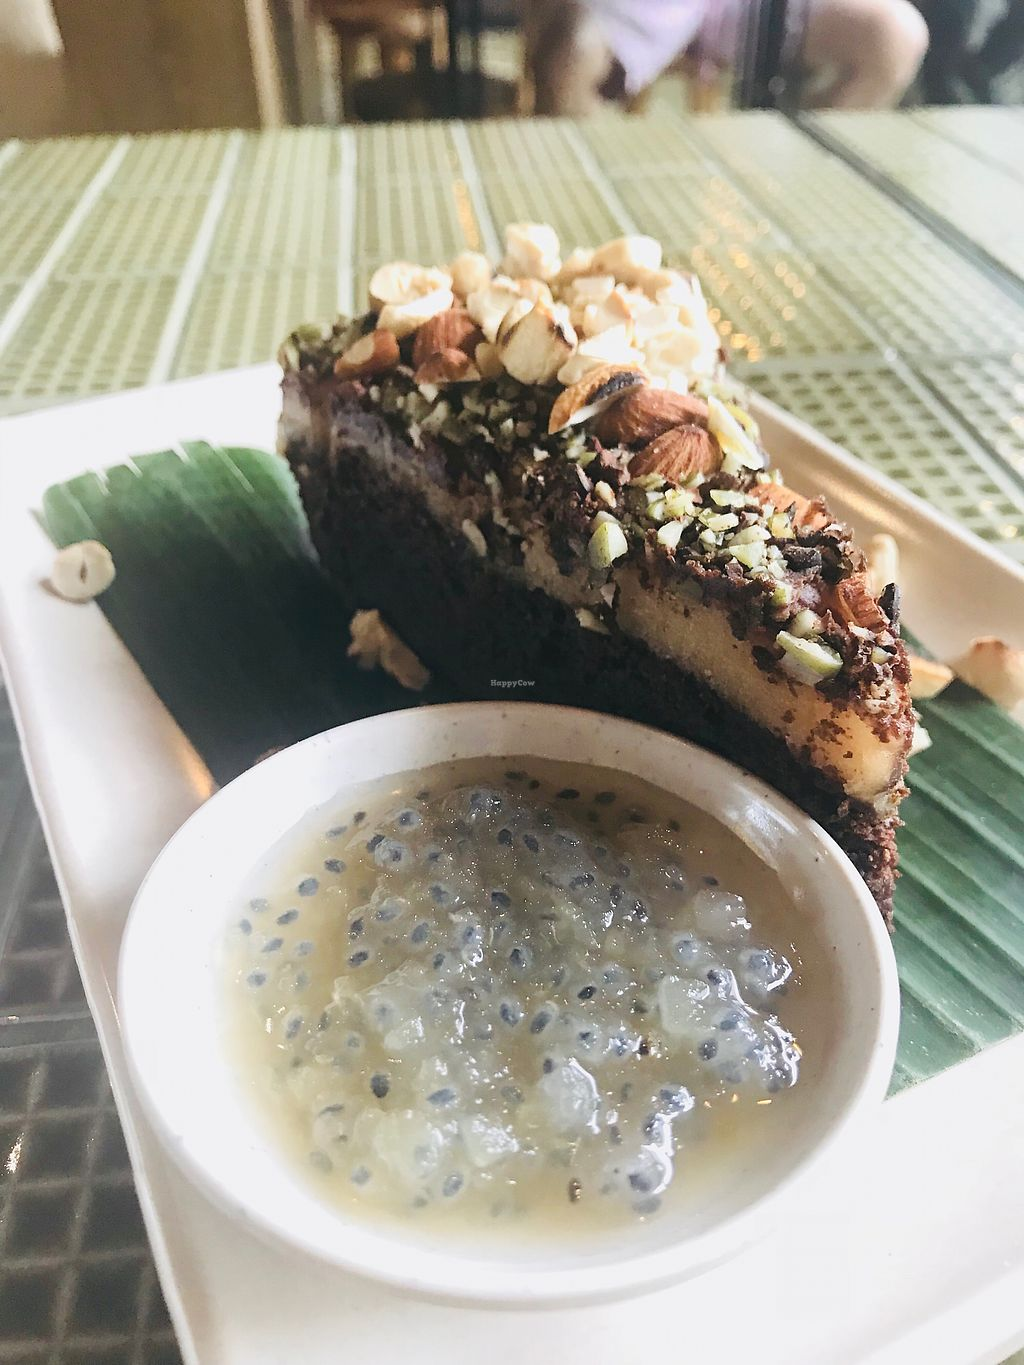 """Photo of Burgreens - Pondok Indah  by <a href=""""/members/profile/jamborambo"""">jamborambo</a> <br/>Chocolate Cake <br/> January 21, 2018  - <a href='/contact/abuse/image/103958/349225'>Report</a>"""